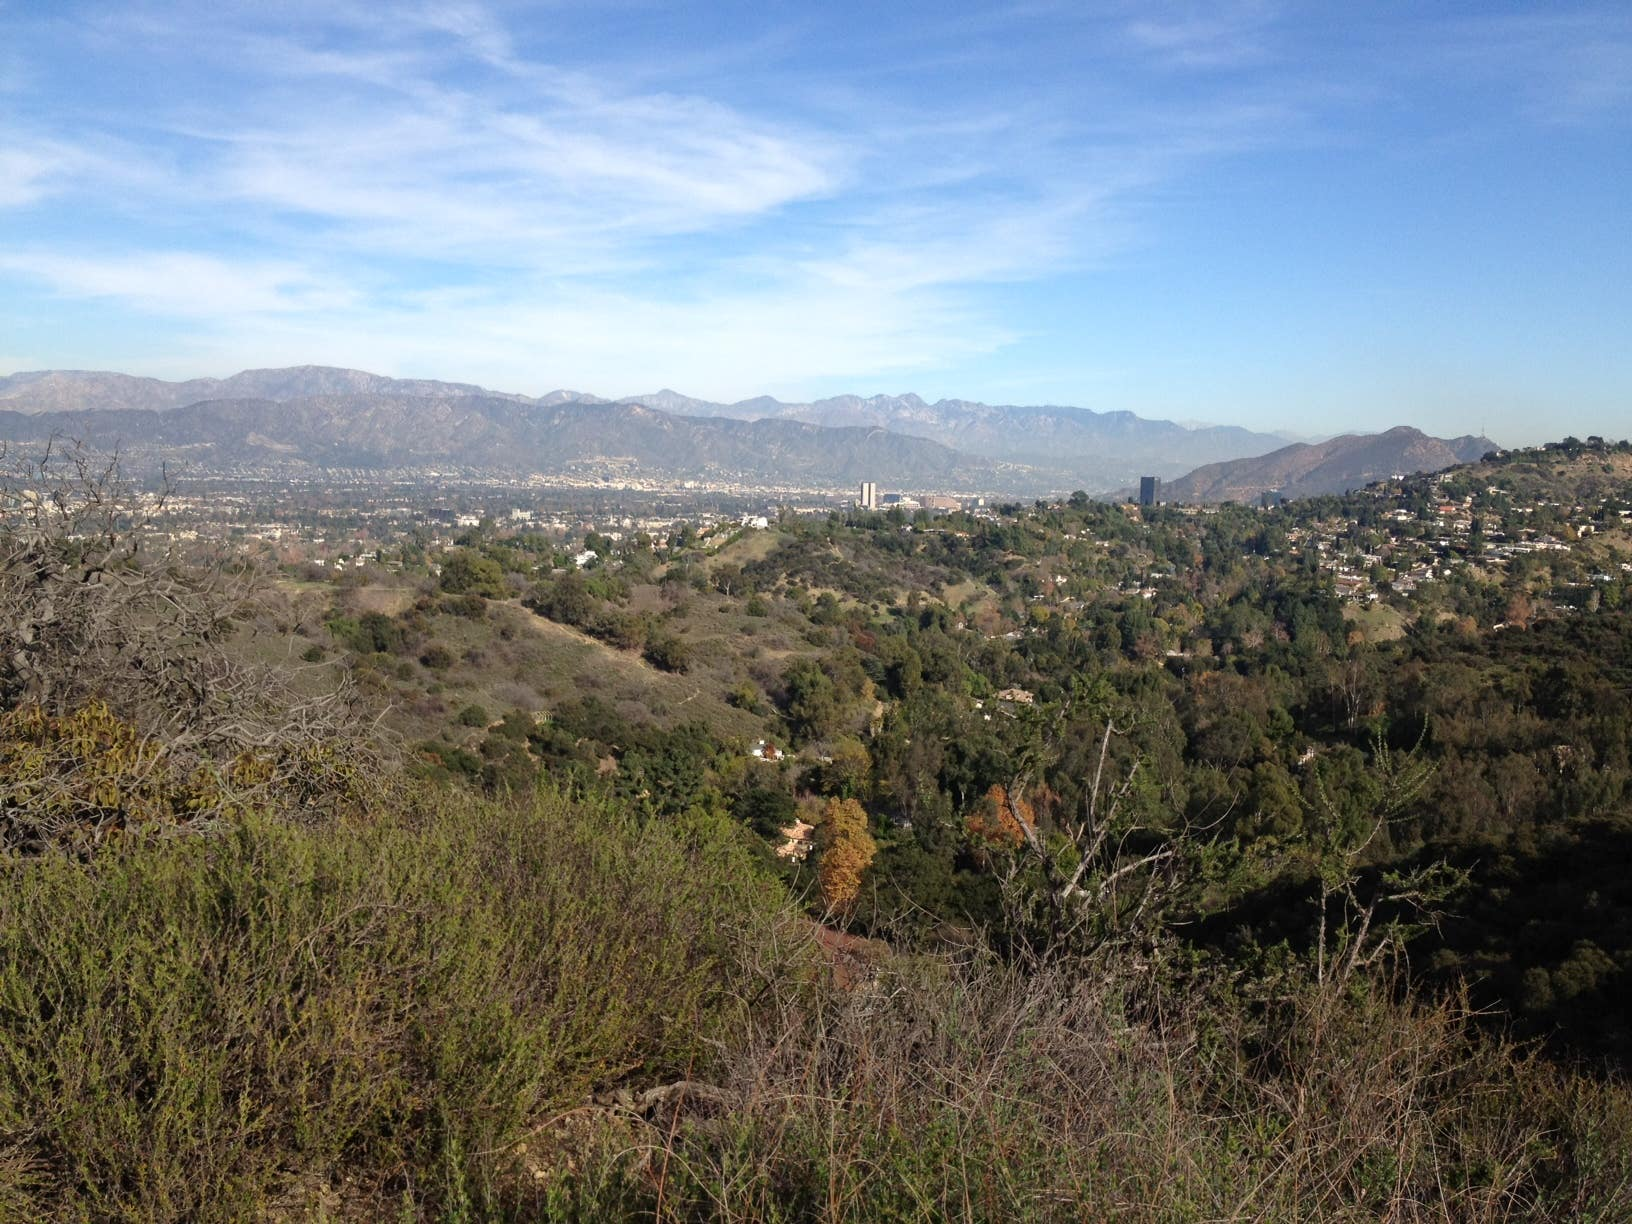 Studio City viewed from TreePeople | Photo: Kristen Neveu, Discover Los Angeles Flickr Pool